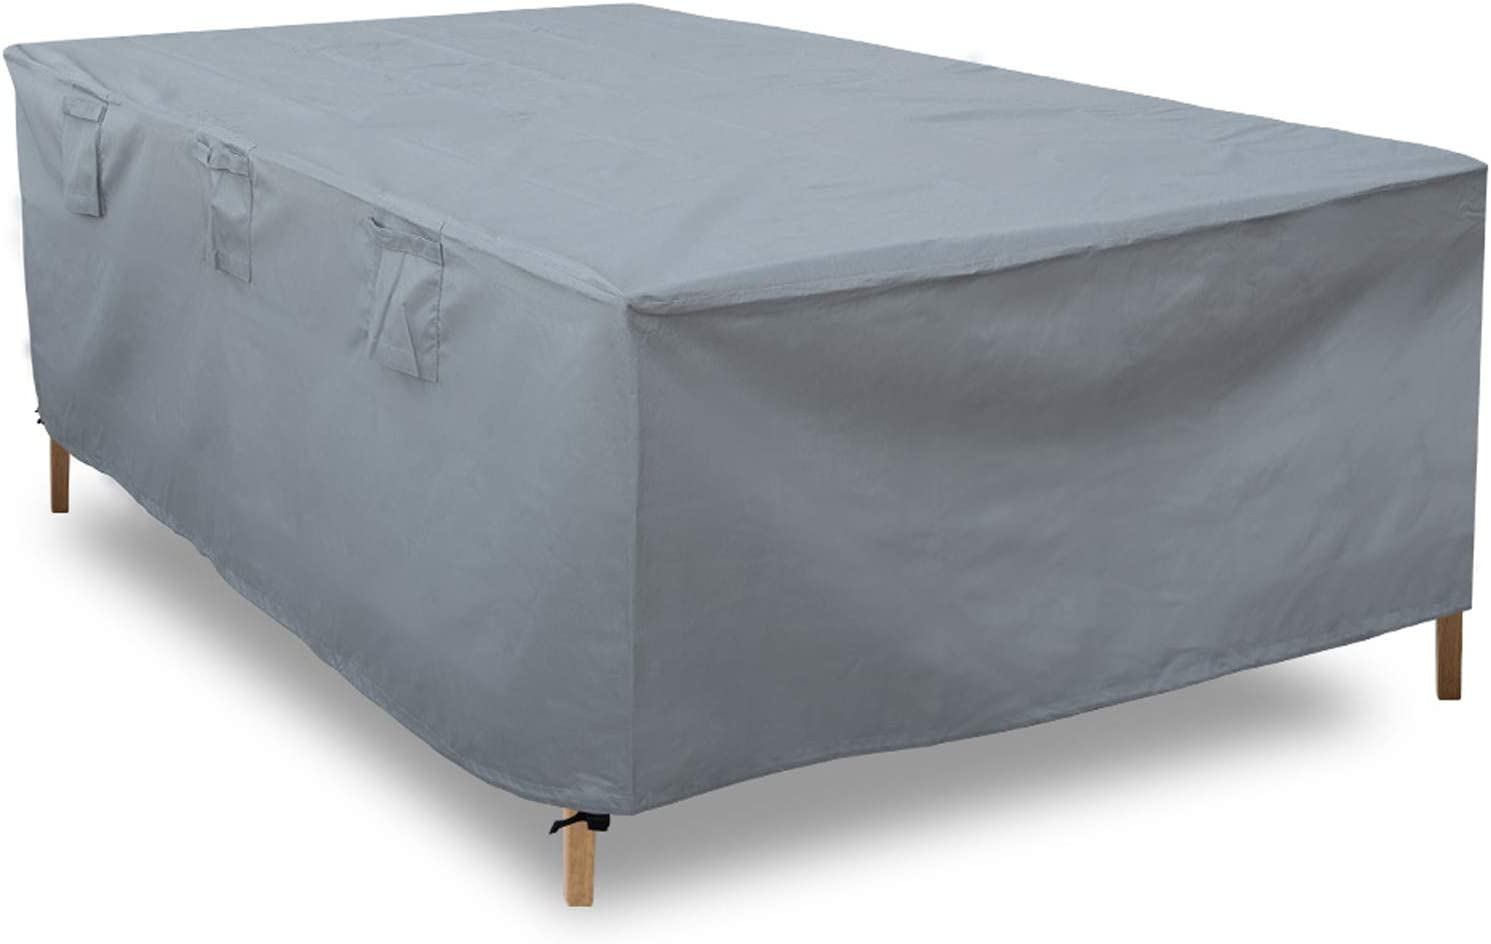 ORDORA Patio Table Cover Waterproof for Rectangular Furniture, 600D Canvas Outdoor Patio Furniture Covers Snow-Proof, Sun & Wind Resistant, Zipper Design, Fits Table & Chair Under 86Lx61Wx27H Inches